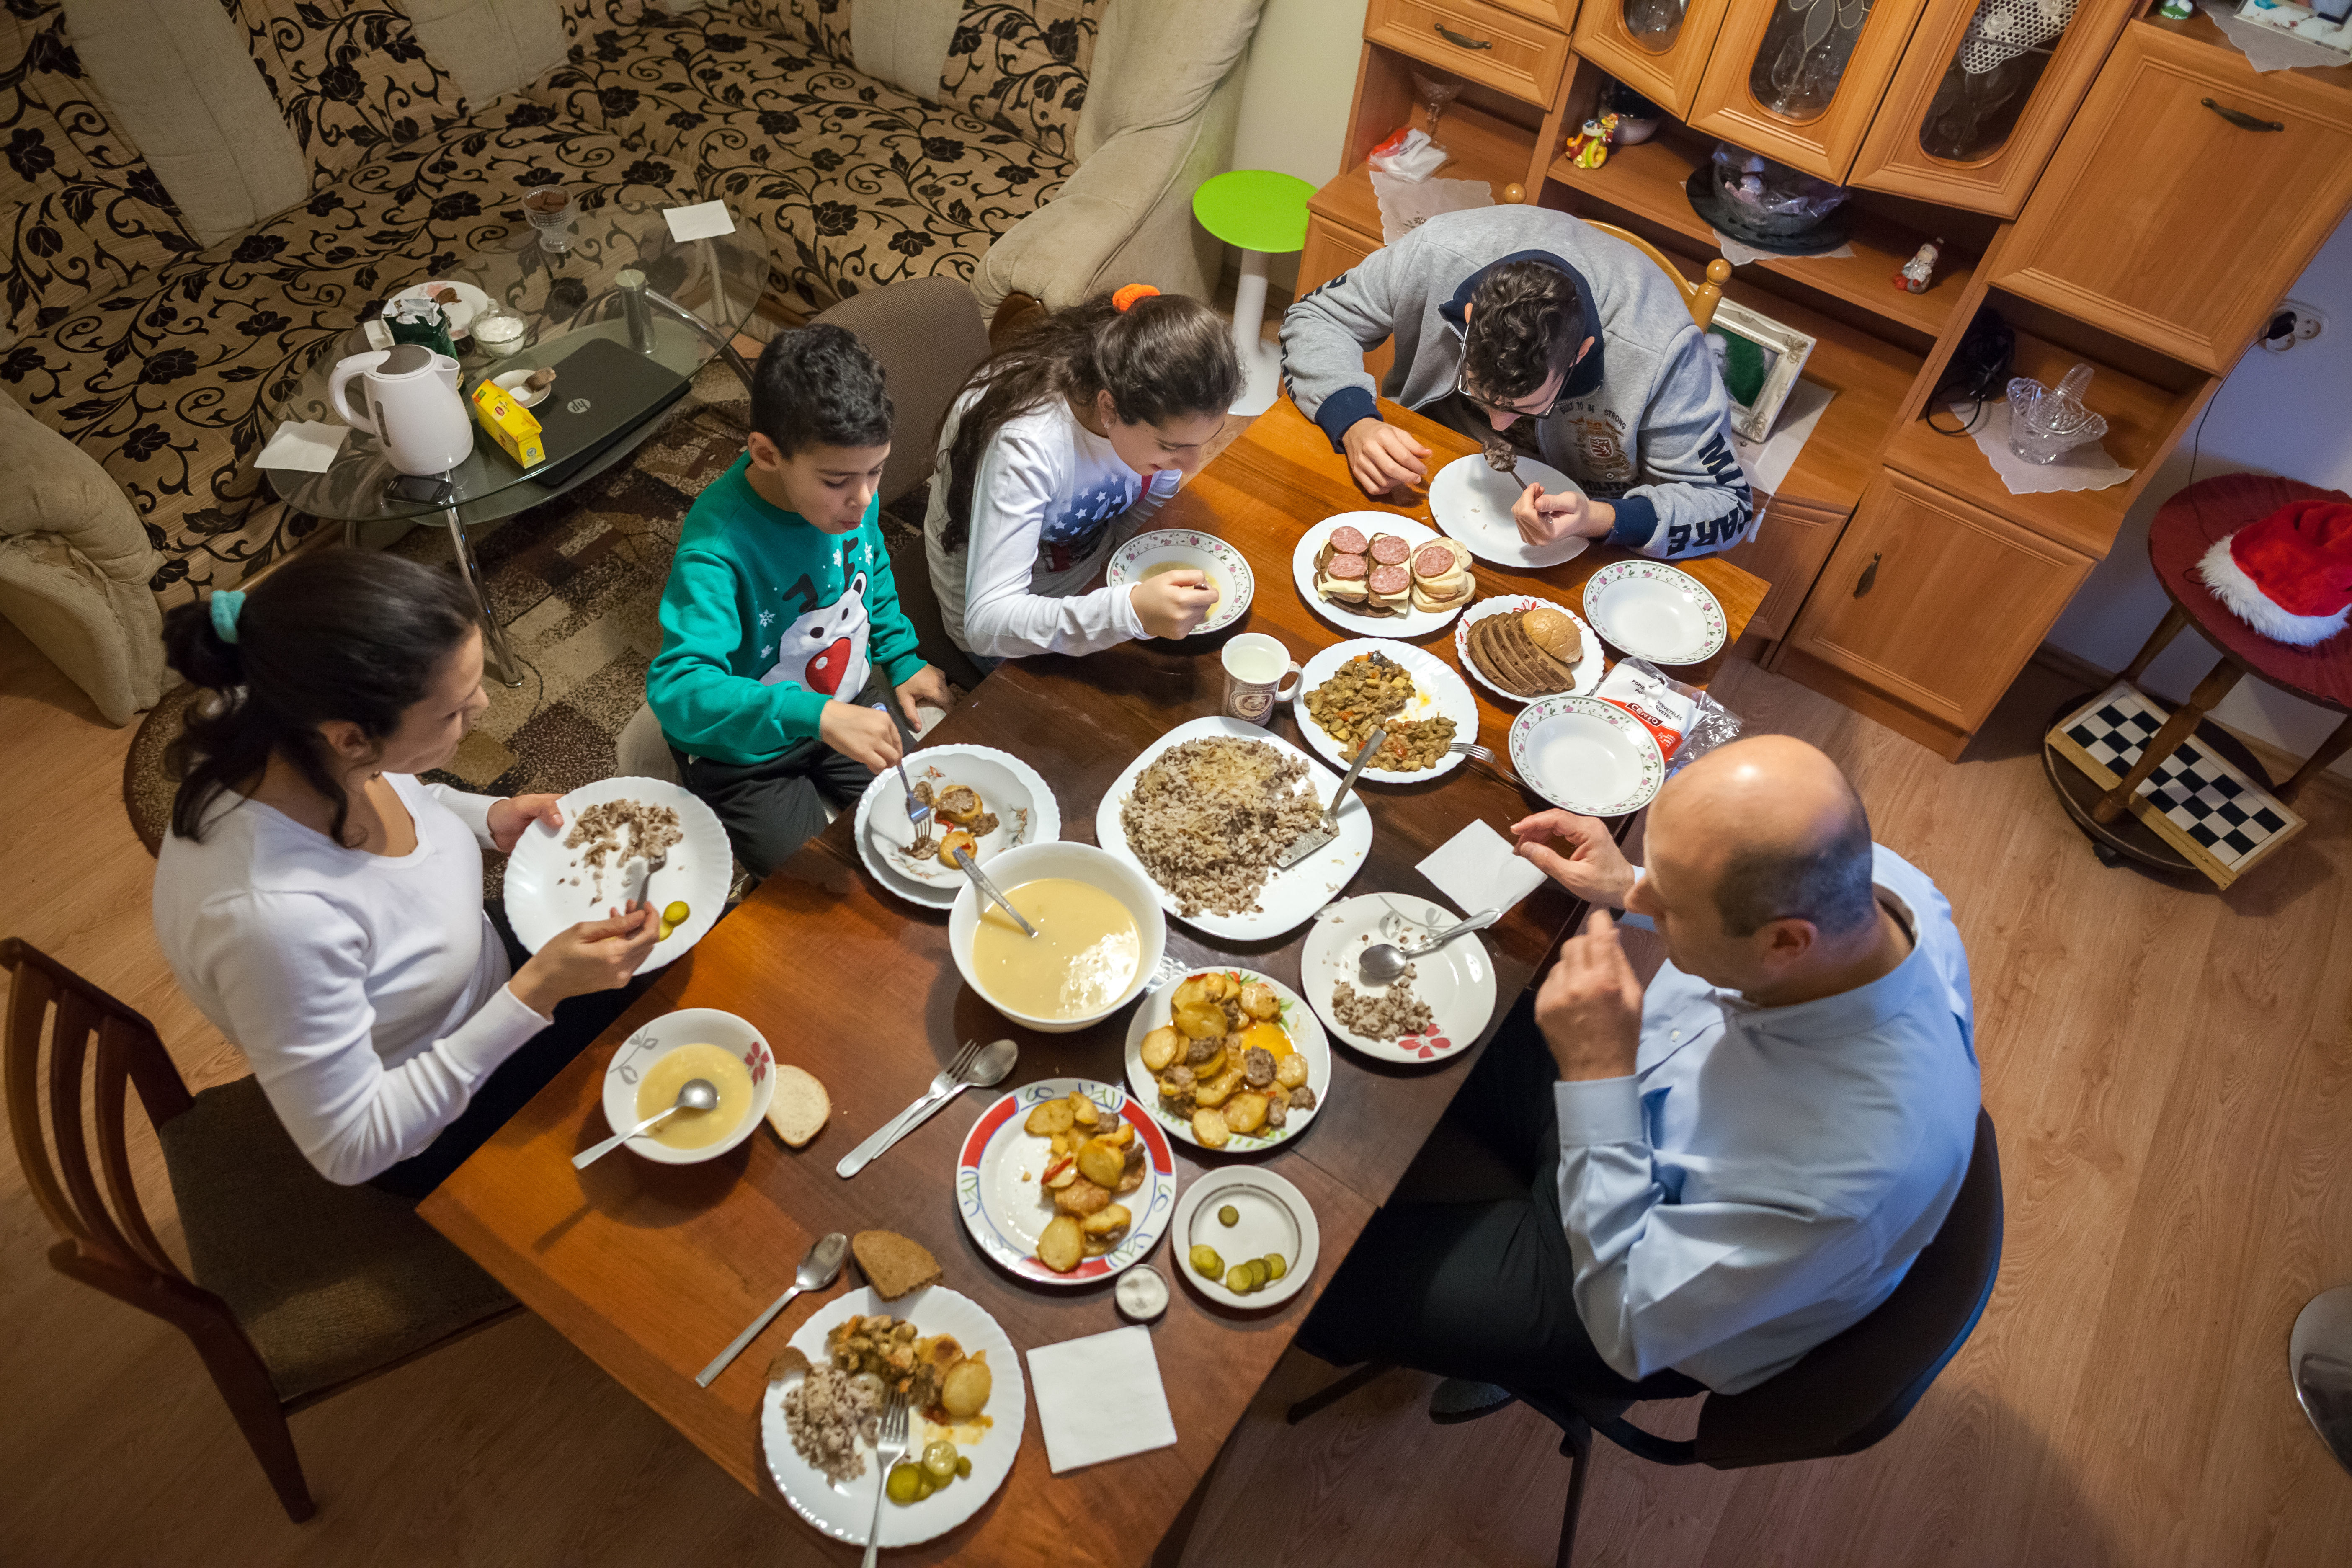 Every evening, the family gathers around the table, which they consider a family tradition. They are always glad to receive guests, whom they invite to try traditional Syrian dishes. The decision to leave Syria was not easy, but the family hopes that Lithuania will give the children an opportunity at a safe and bright future.